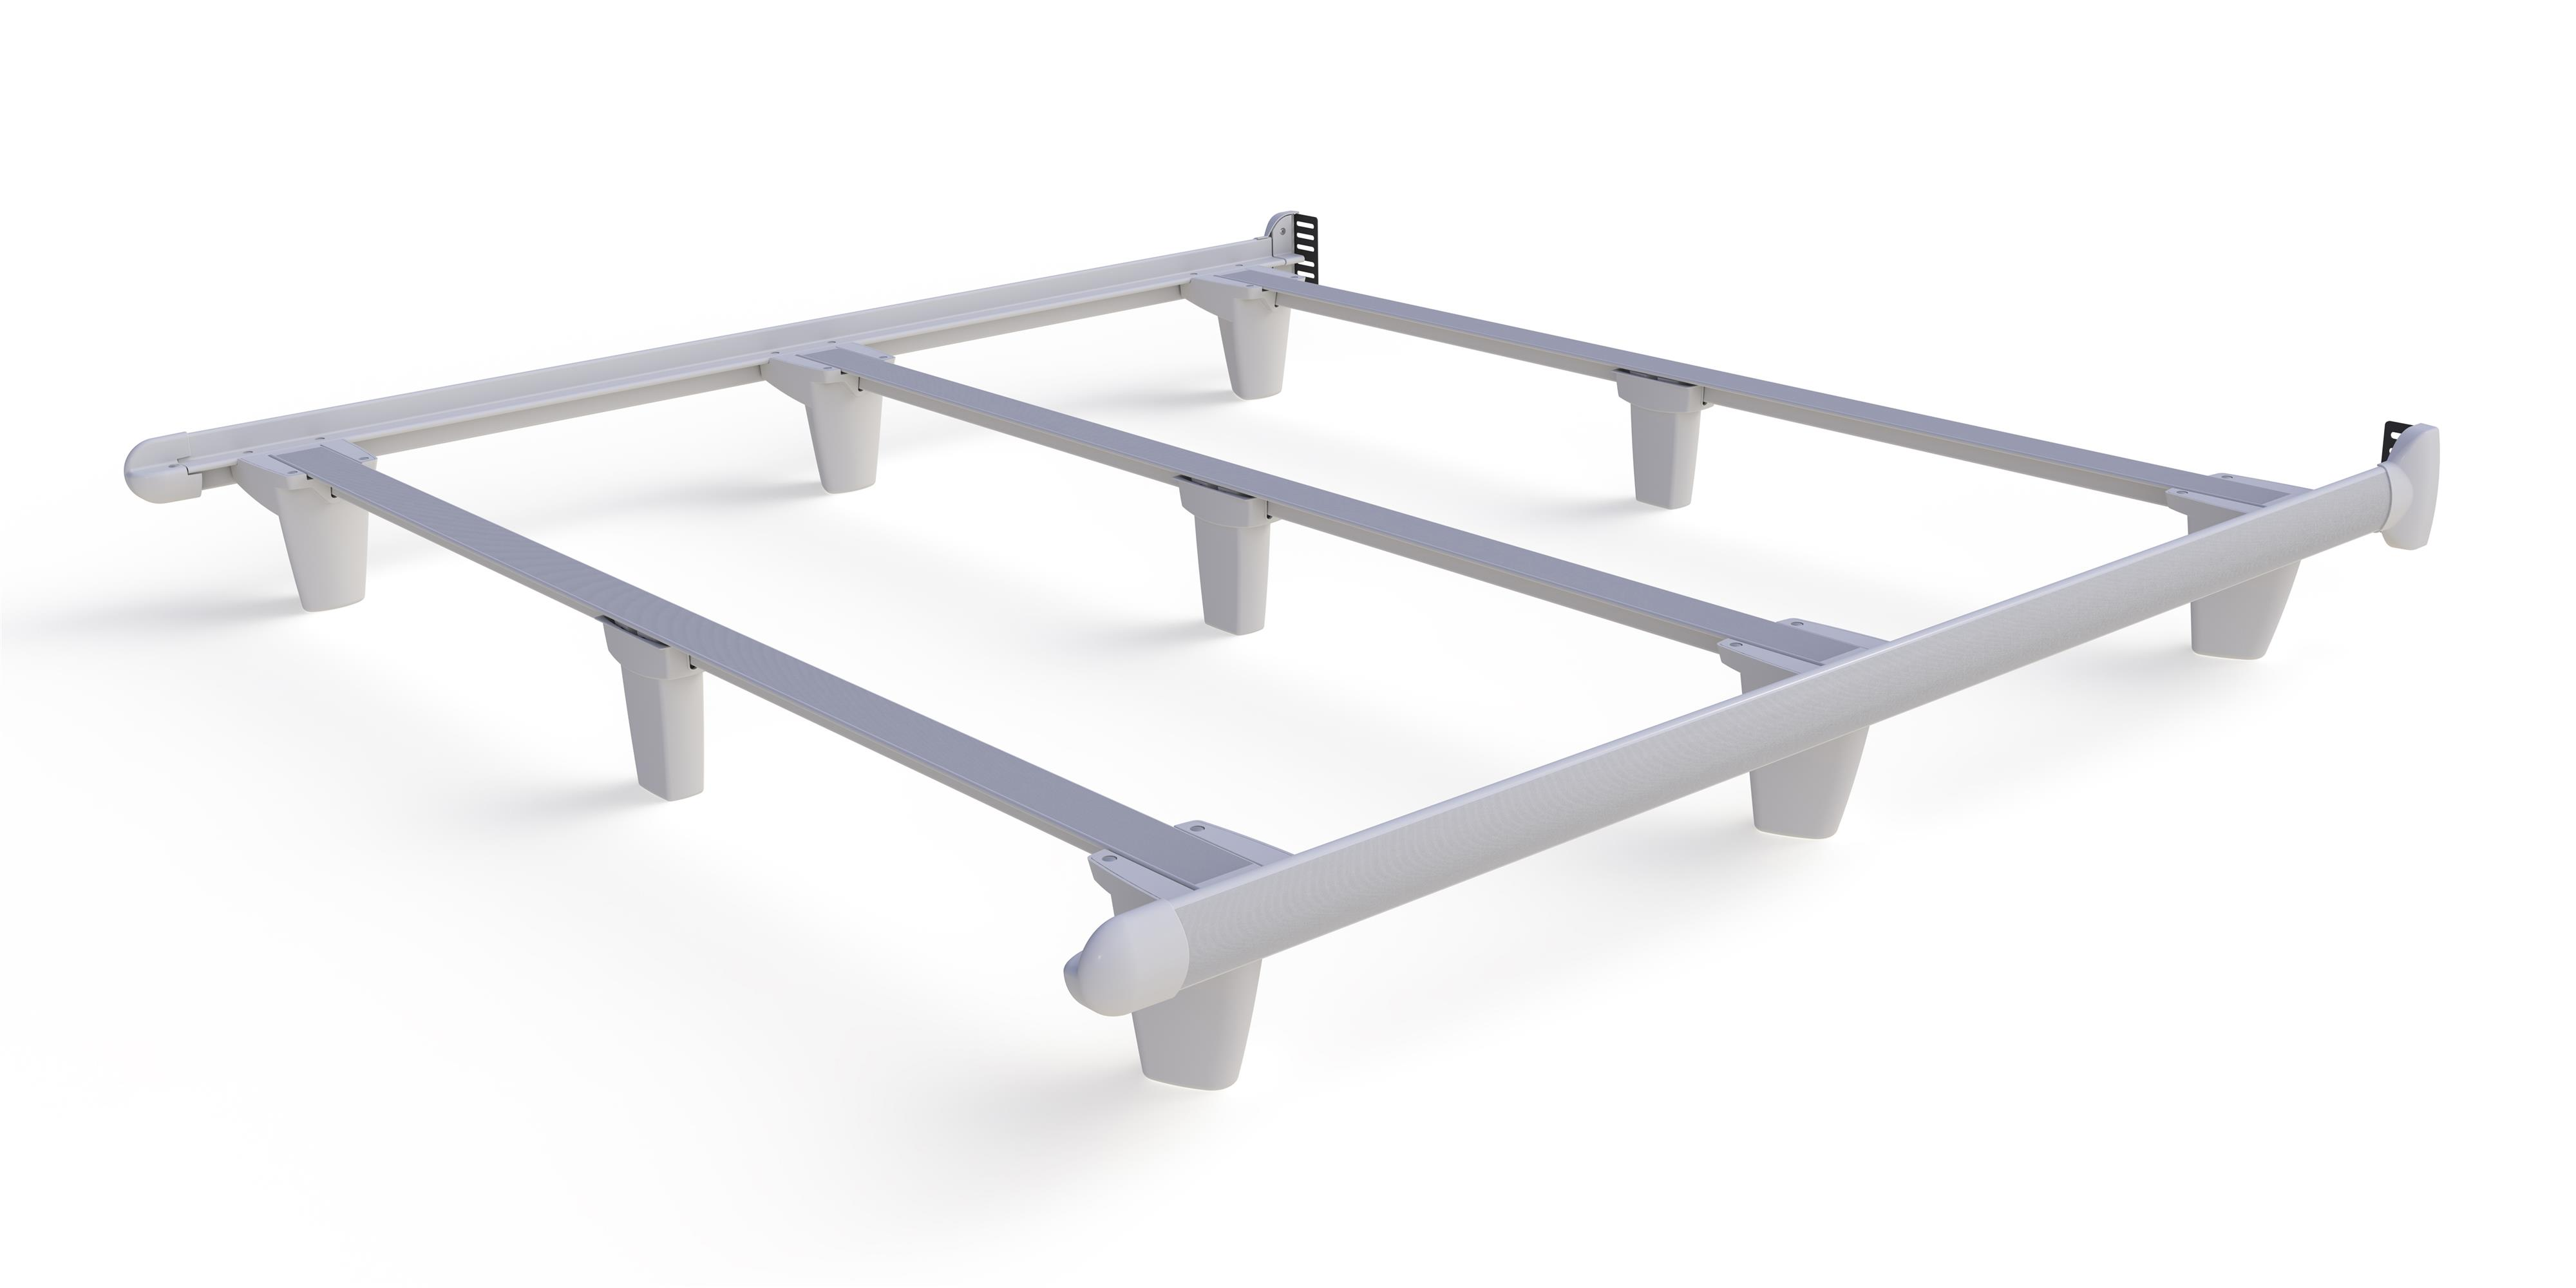 Embrace emBrace California King Bed Frame - White by Knickerbocker at HomeWorld Furniture